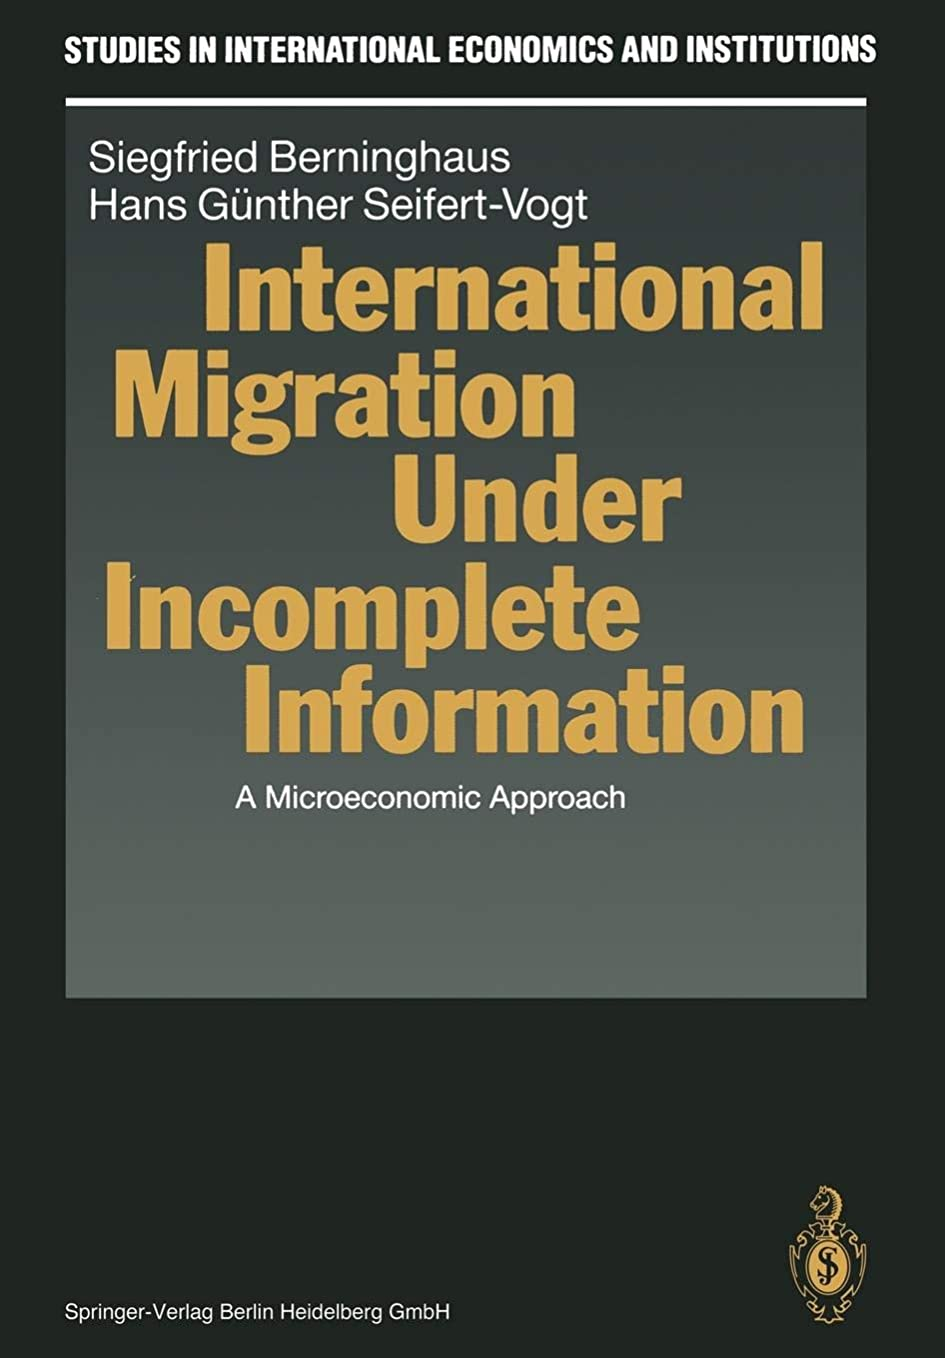 International Migration Under Incomplete Information: A Microeconomic Approach (Studies in International Economics and Institutions)